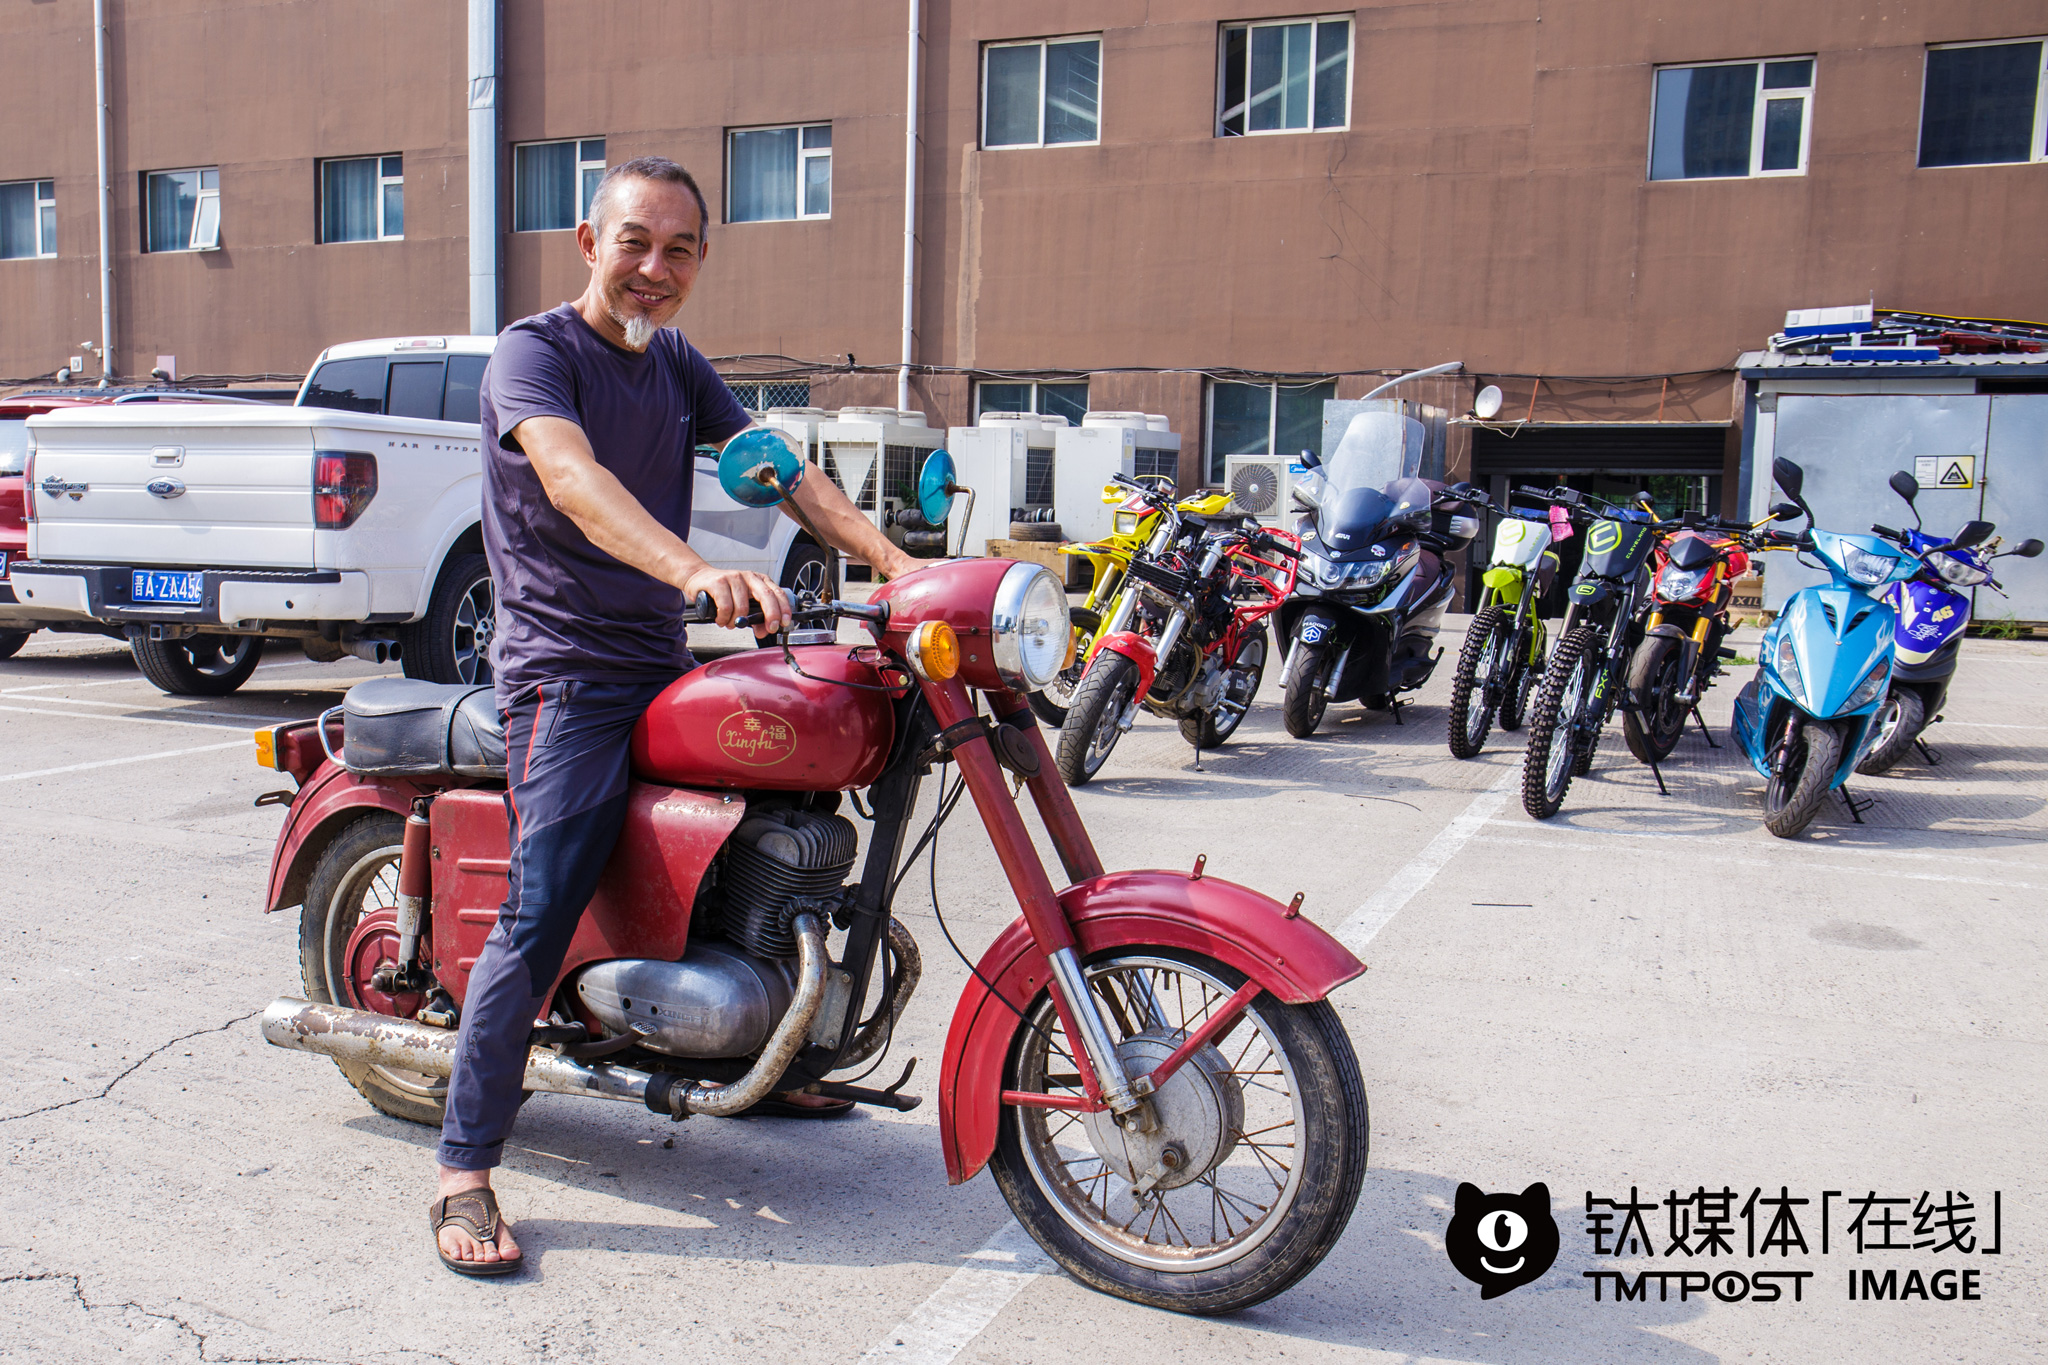 """Su Taiping, aged 51, is also a motorcycle rider. He bought his dream motorcycle Happiness at the price of 2,000 yuan from a friend in the 80s. """"At that time, Happiness motorcycle was sold at around 7,000 yuan, similar to the price of an apartment. However, I was still a factory worker and earned 10 yuan a month. I started riding race motorcycles in 1983. The majority of the first-wave race motorcycle riders have already passed away, yet I am still alive,"""" he said, jokingly, """"I've bought over a dozen motorcycles and have been repairing motorcycles or selling second-hand motorcycles for a decade. Many motorcycle riders in Bejing would ask me for help when something went wrong with their motorcycles."""" For him, first-wave motorcycle riders love race motorcycles because they represent fashion, today's motorcycle riders care more about being who they really are and travelling on motorcycles to see the mountains or the sea."""